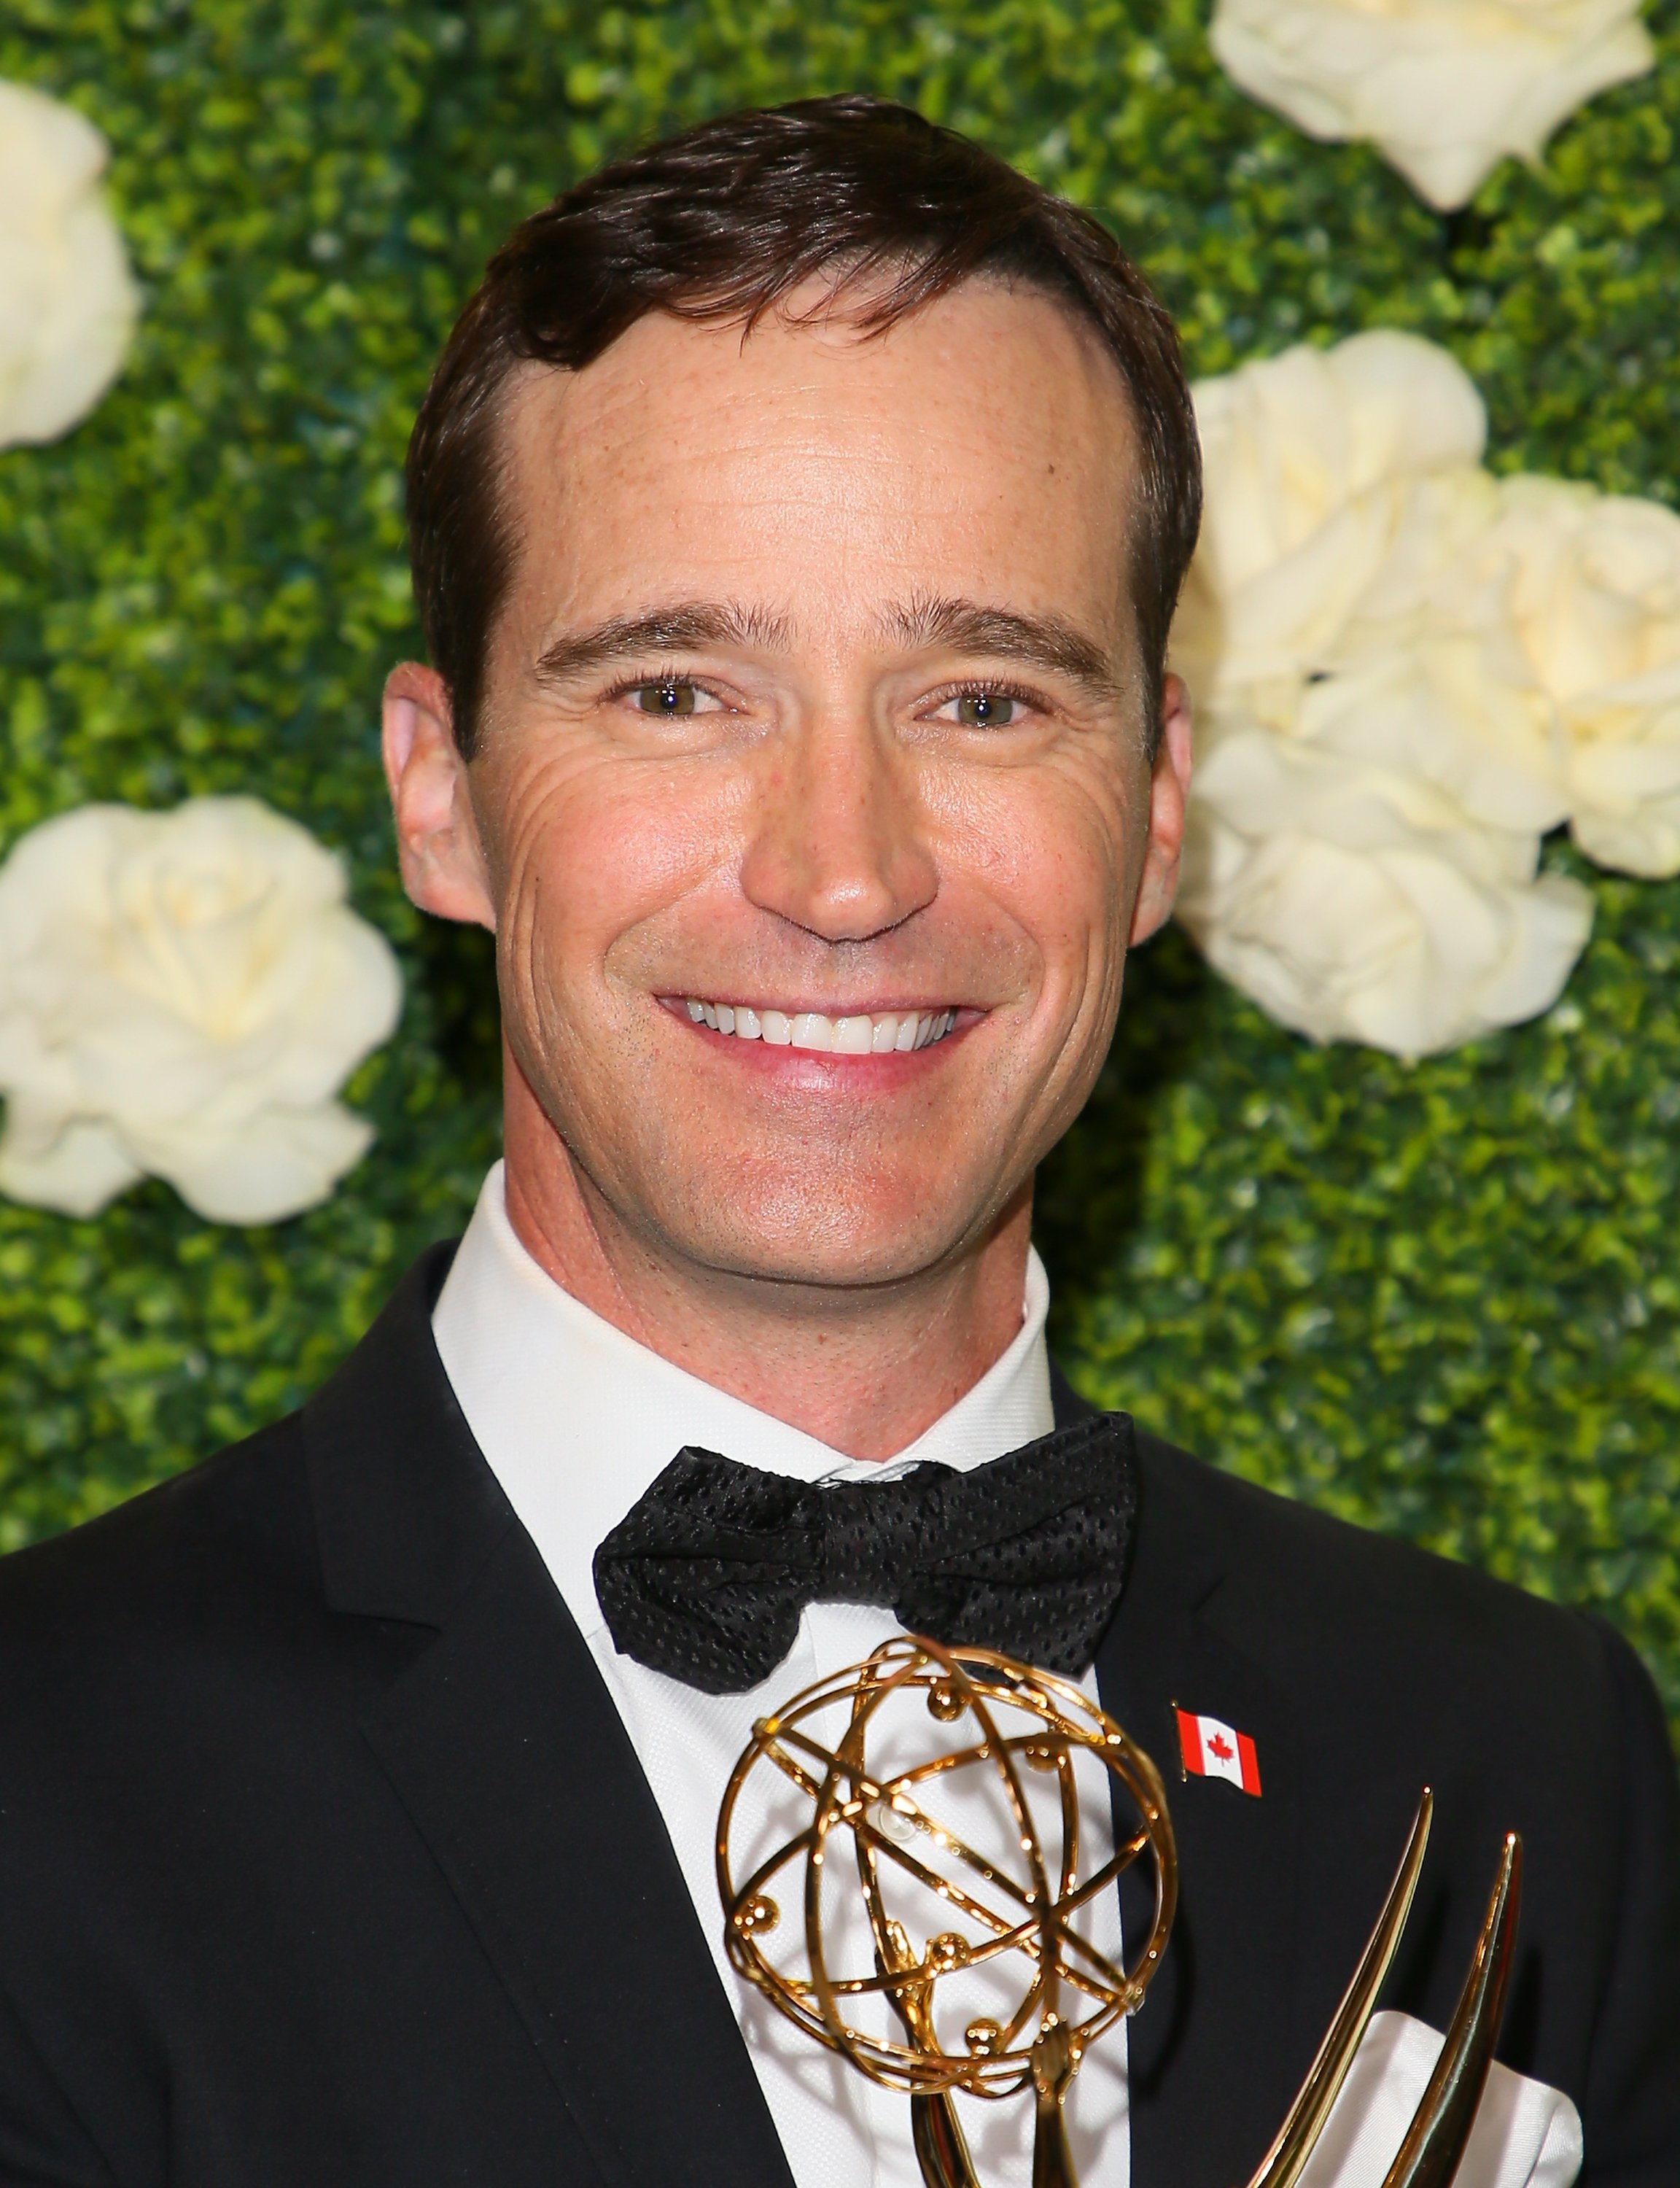 Mike Richards at the CBS Daytime Emmy After Party in Pasadena, California   Photo: JB Lacroix/WireImage via Getty Images